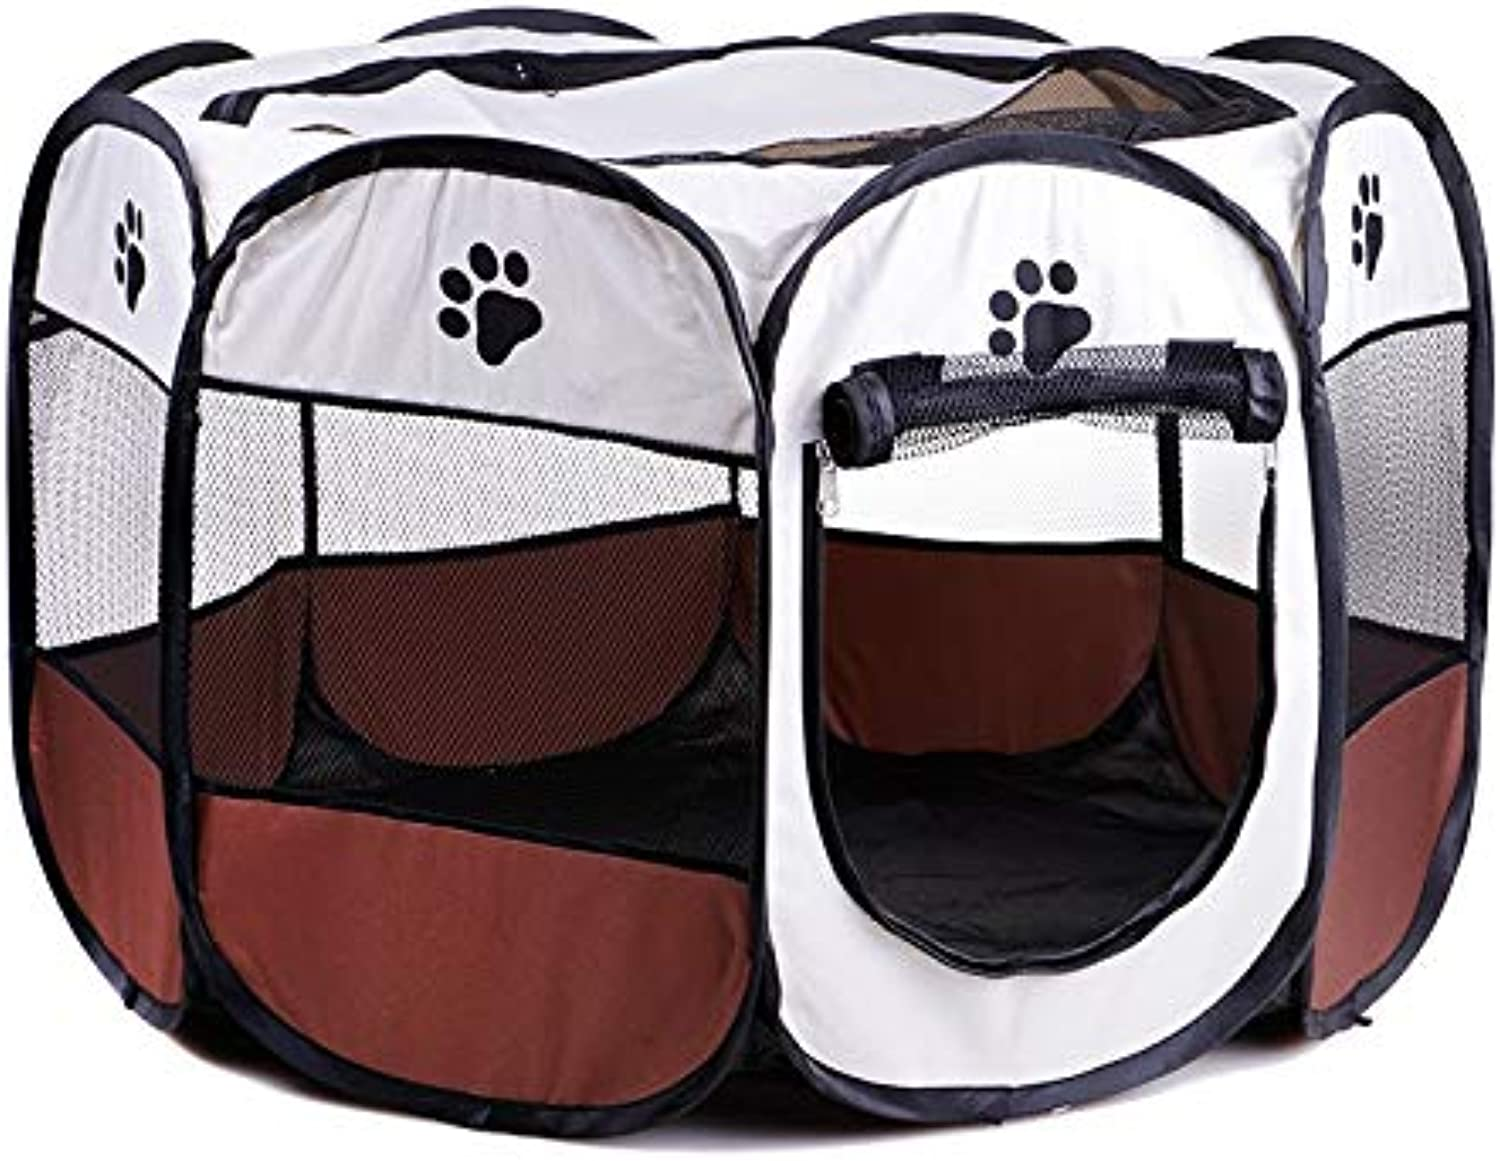 CARBE kennelDogs Portable Folding Pet Tent Dog House Cage Dog Tent Playpen Puppy Kennel Easy Operation Octagonal Fence Outdoor